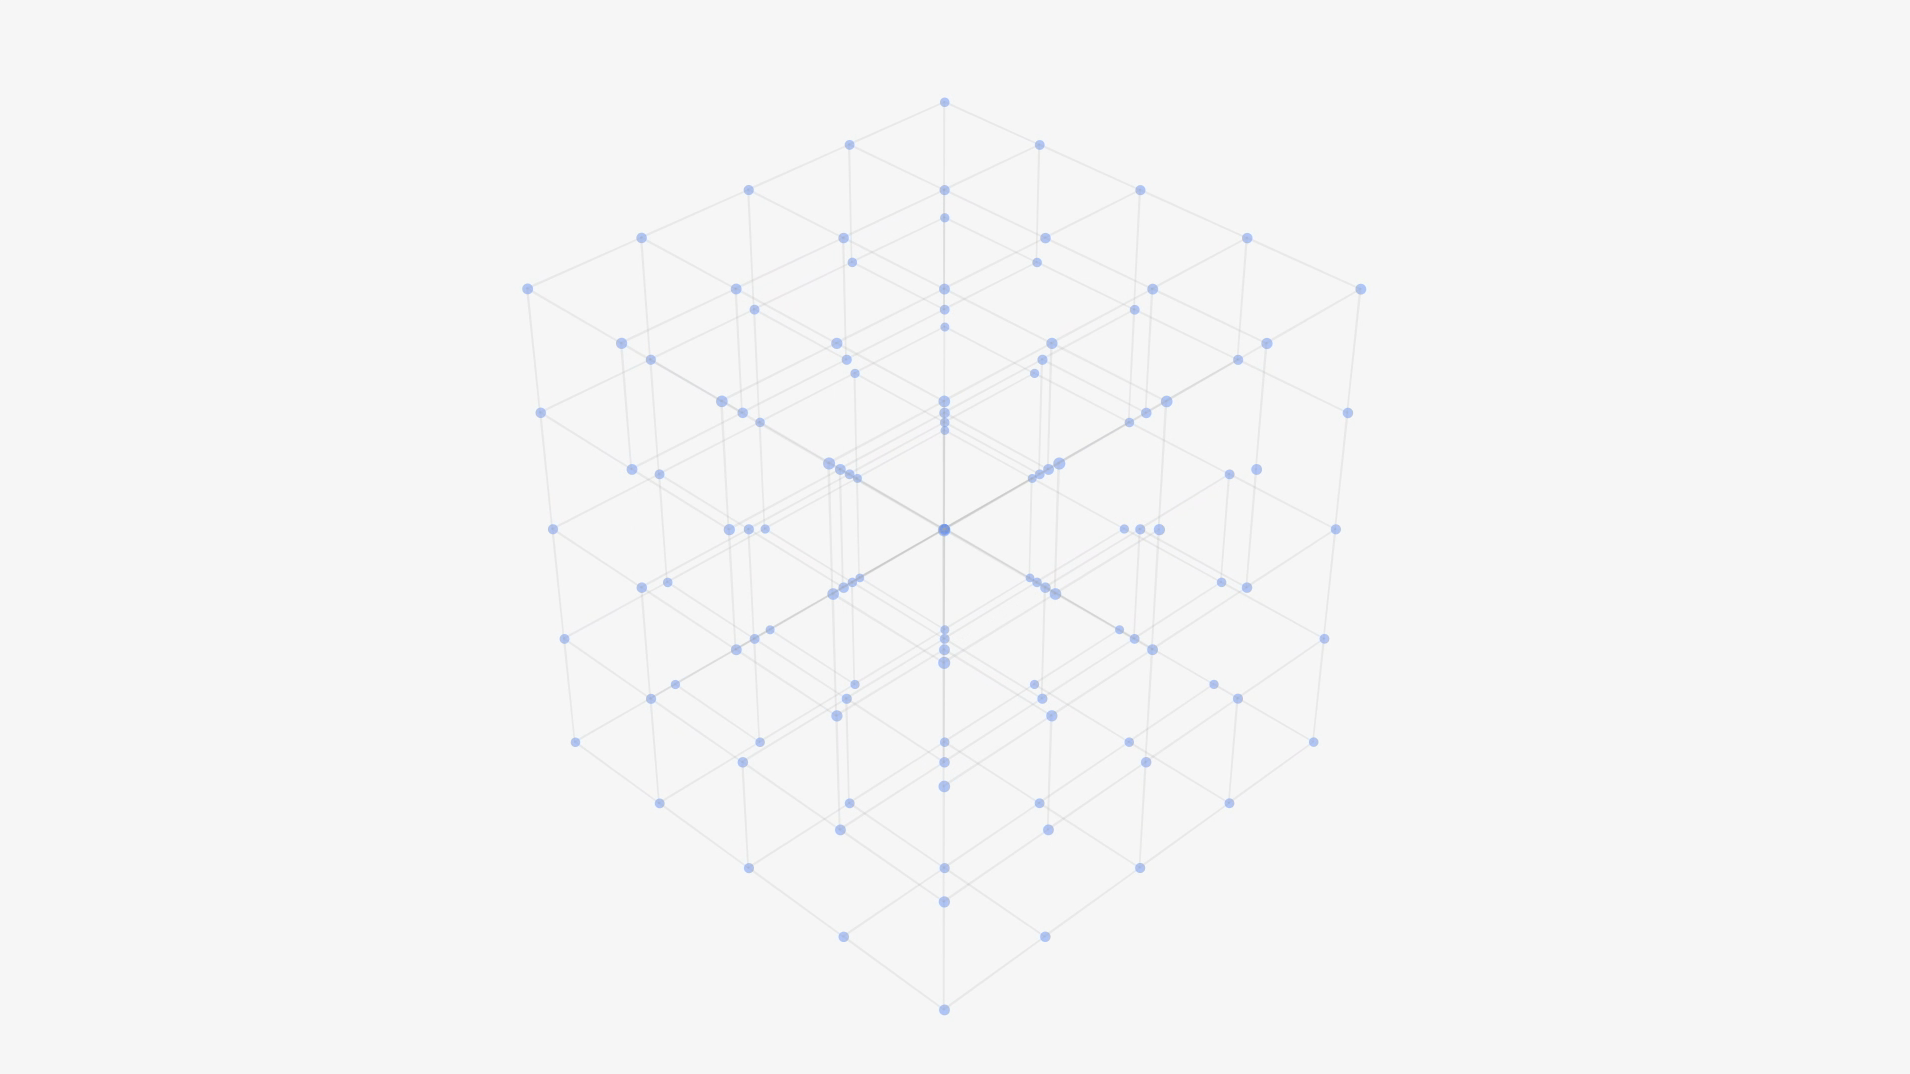 Motion design screenshot of outlined boxes connected by blue dots to make one large box